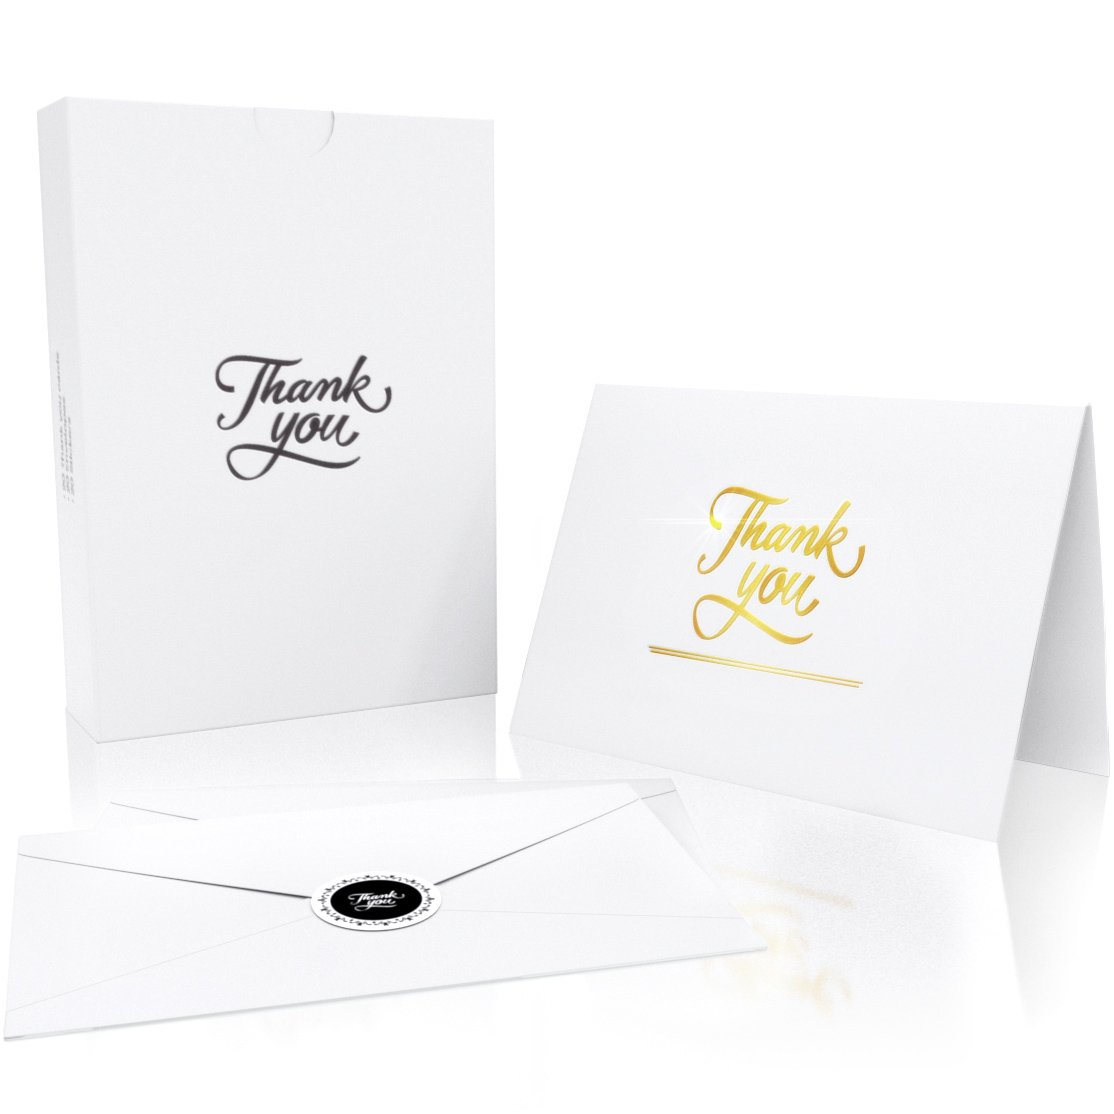 Thank You Cards with 20 Envelopes and 20 Stickers - Gold Foil Embossed Letters - Perfect Greeting Card for Baby Shower, Wedding, Business or Graduation